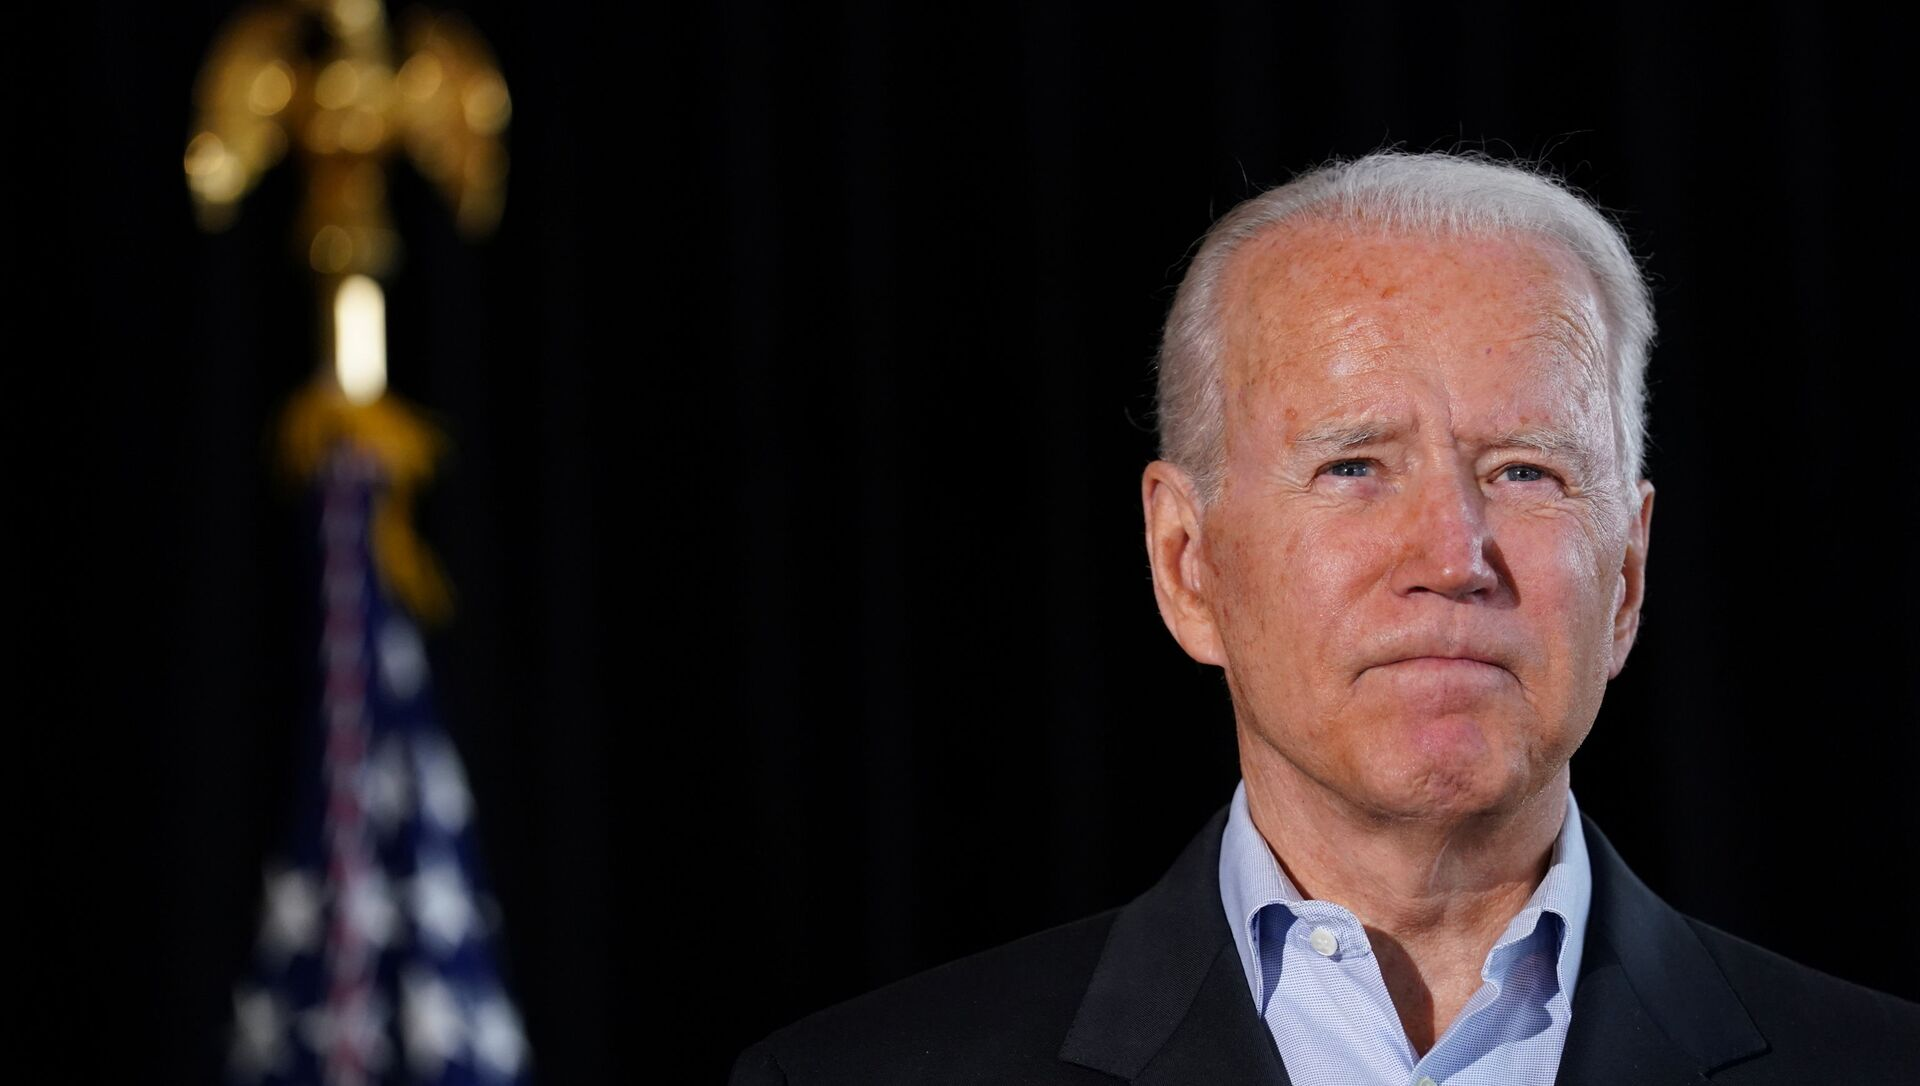 US President Joe Biden gestures as he delivers remarks after speaking to family members whose loved ones died or are missing after the building collapse in Surfside in Miami, Florida, 1 July 2021 - Sputnik International, 1920, 28.07.2021